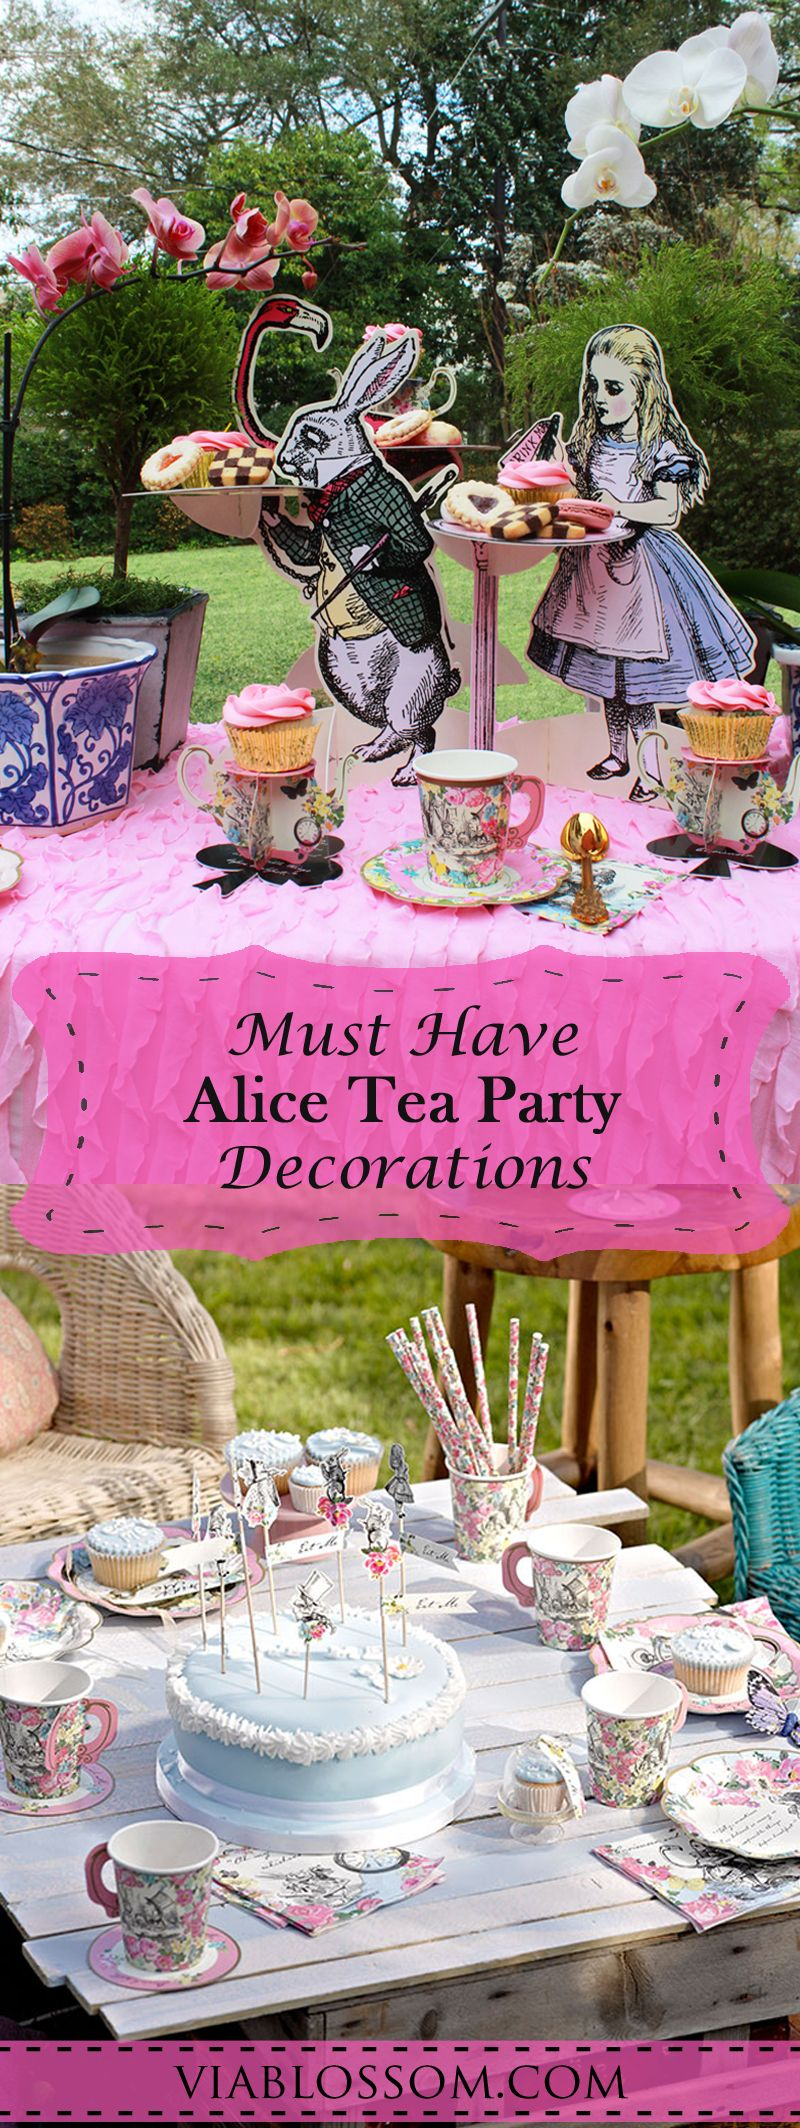 Mad hatter tea party decoration ideas - Mad Hatters Tea Party You Will Love Our Top Alice In Wonderland Tea Party Decorations And Ideas They Are